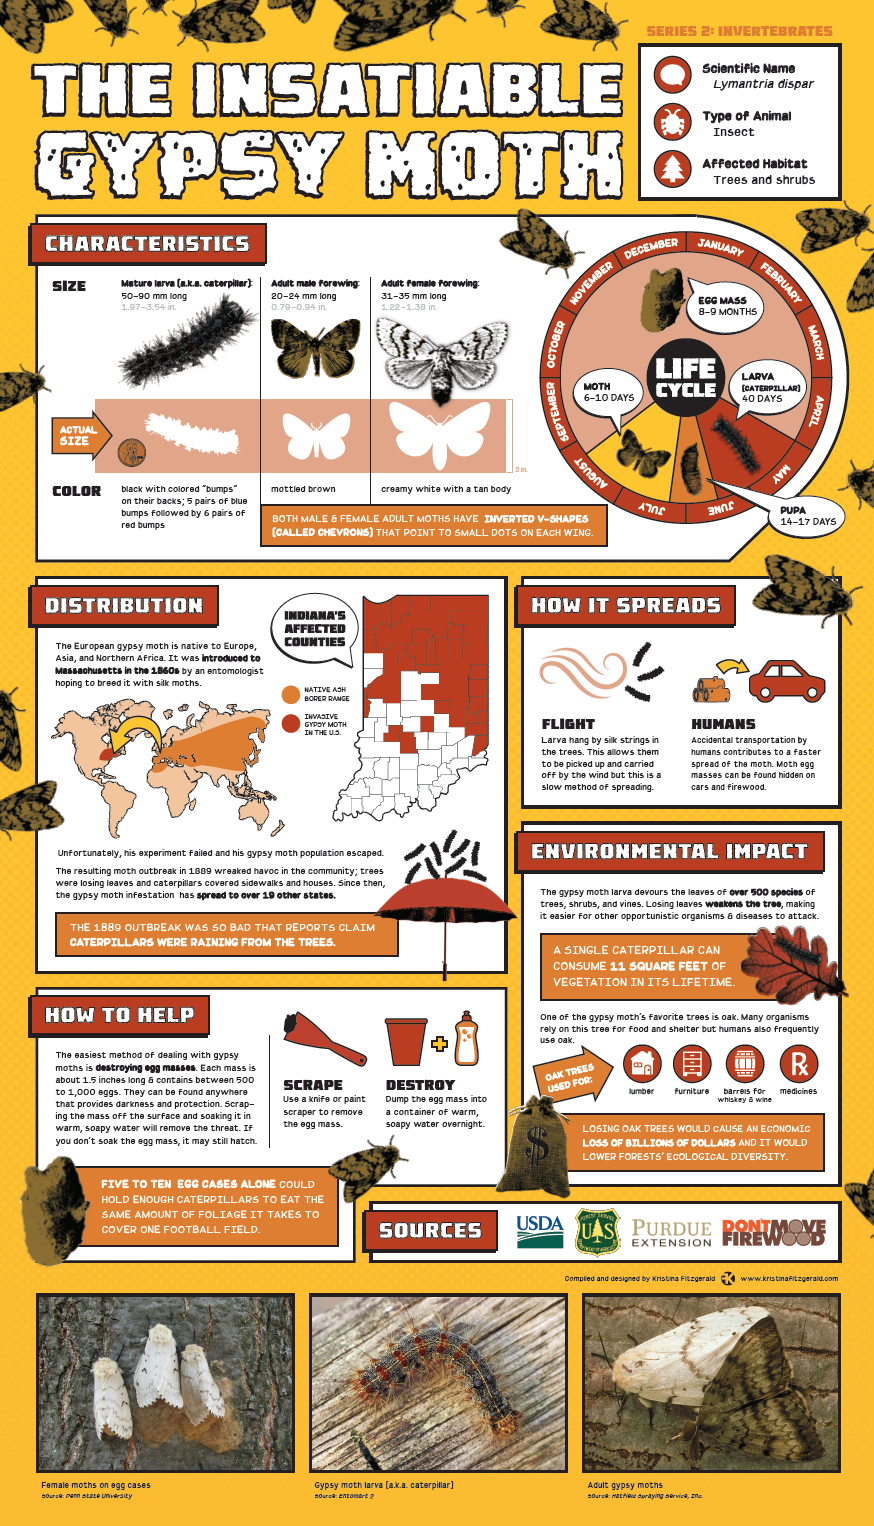 Invasive Species Posters - Gypsy Moth